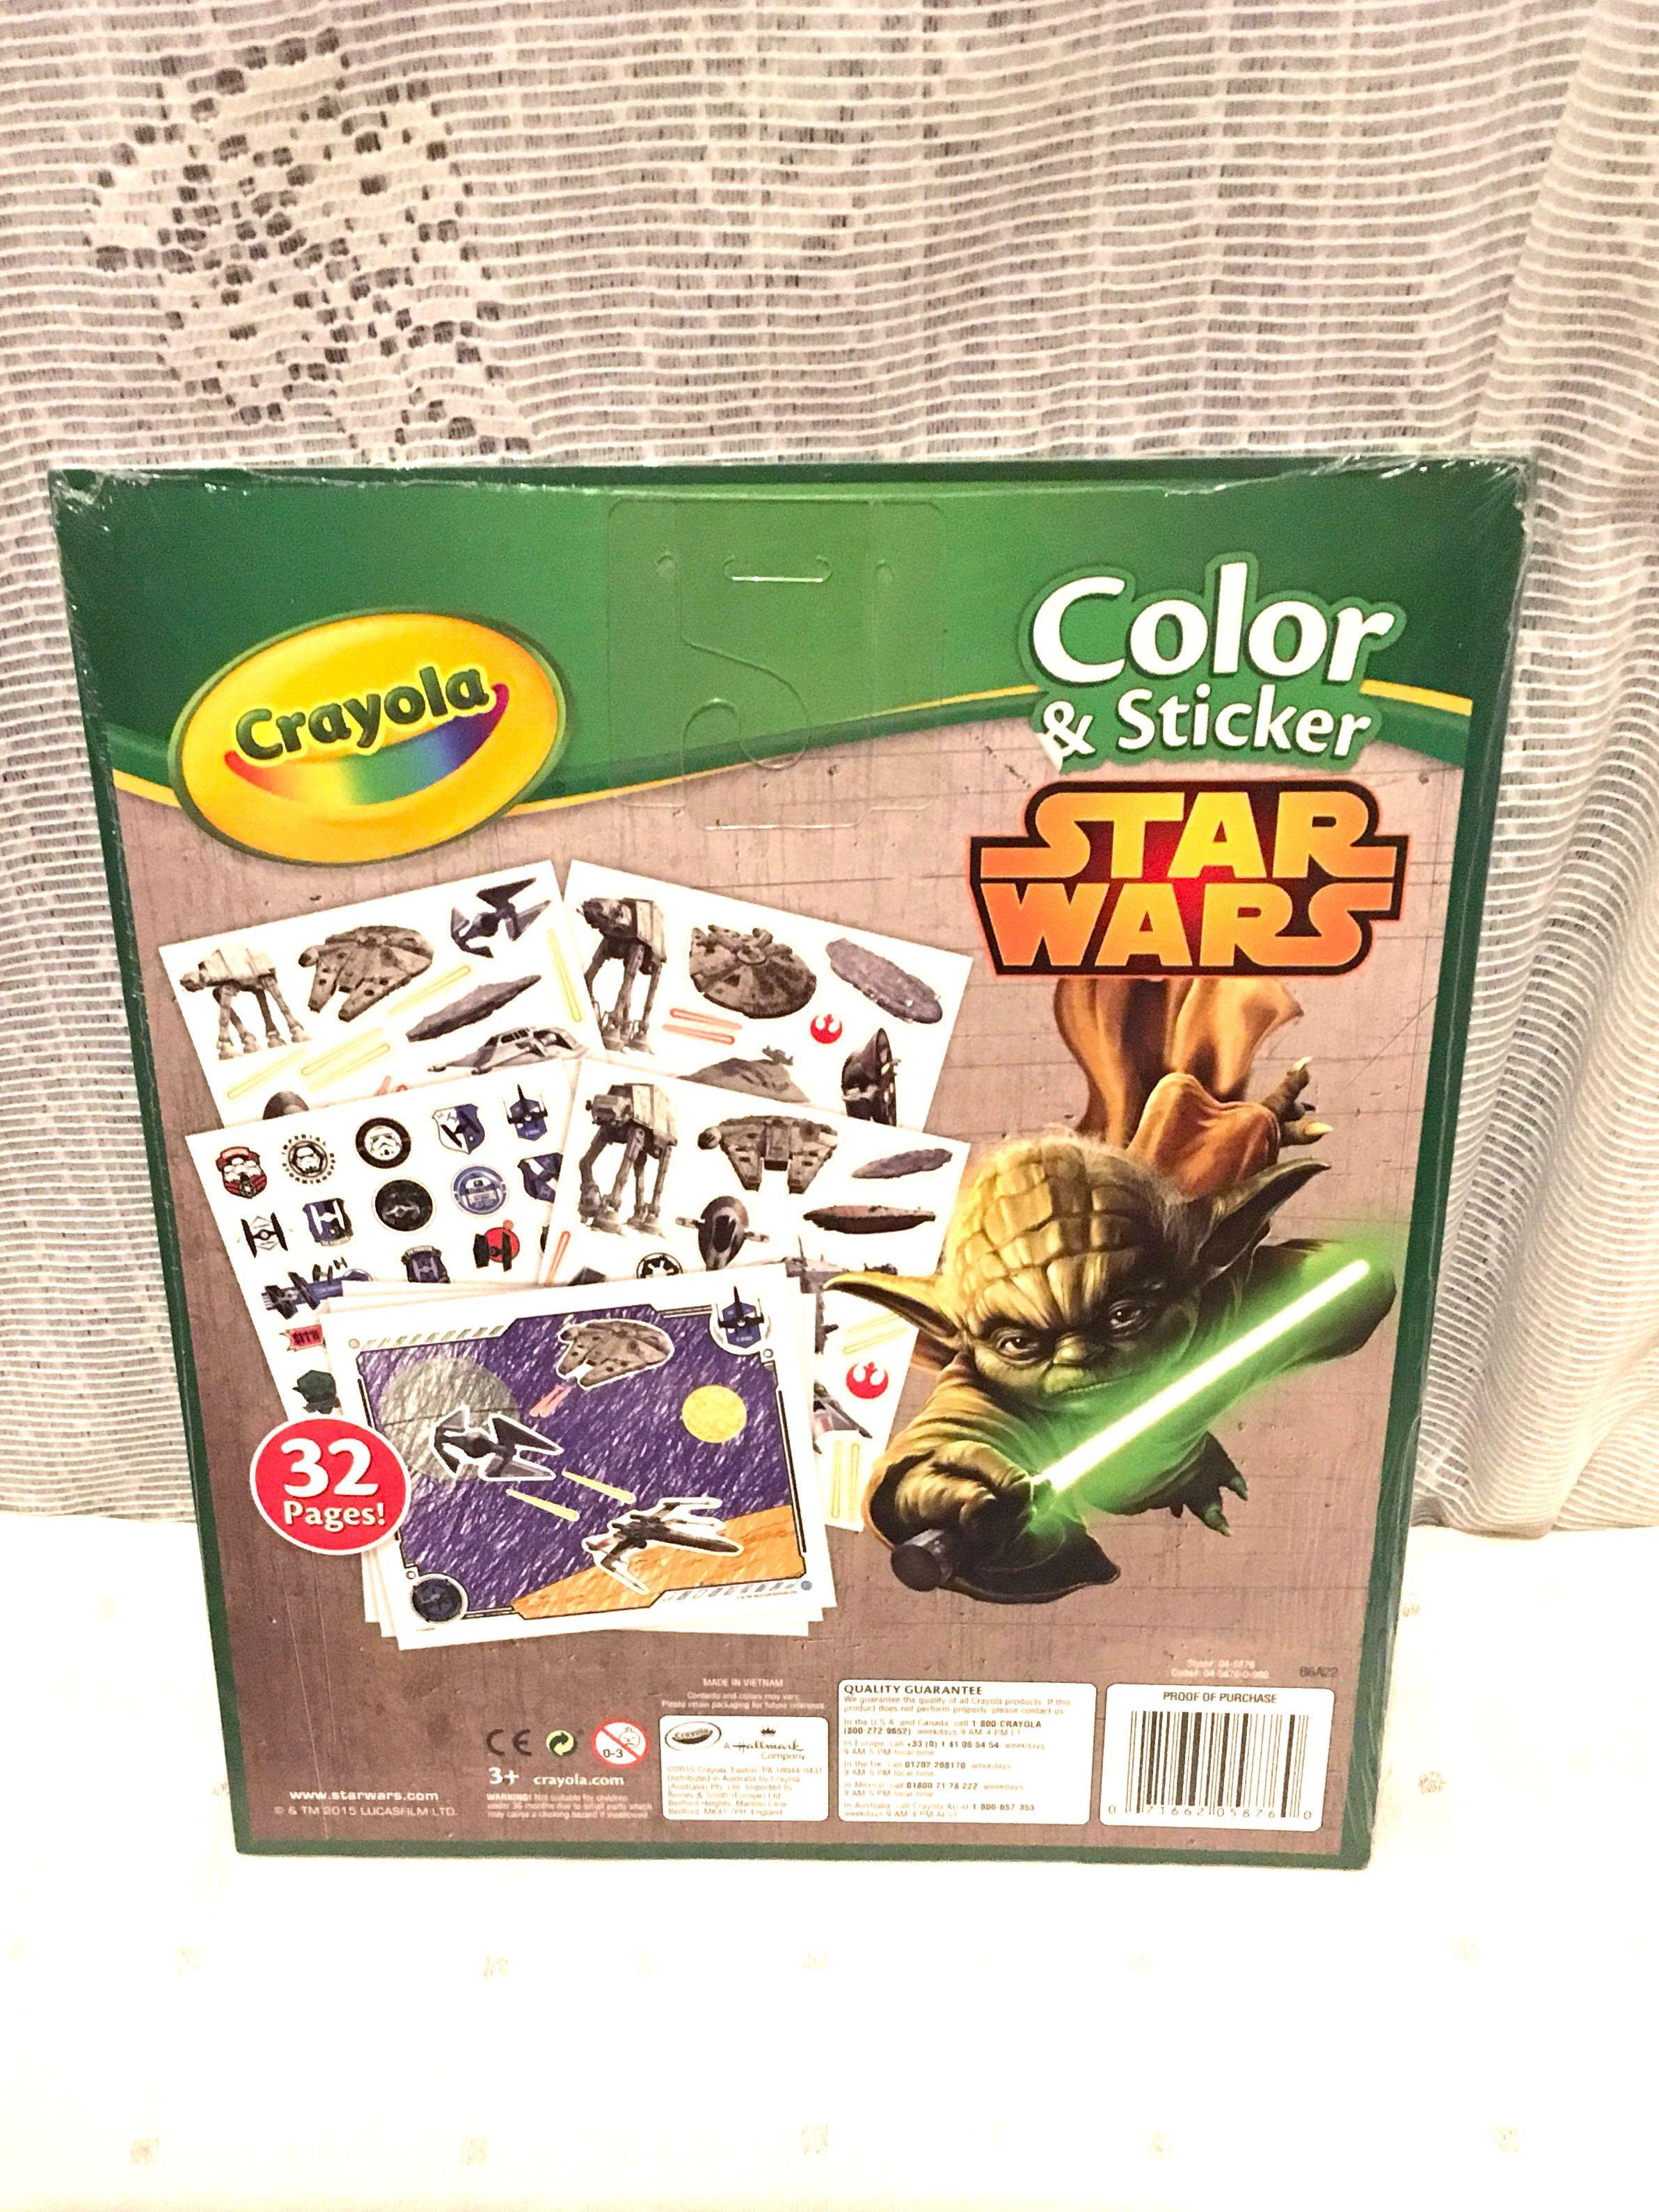 Crayola Color and Sticker Star Wars Kids Colouring Book